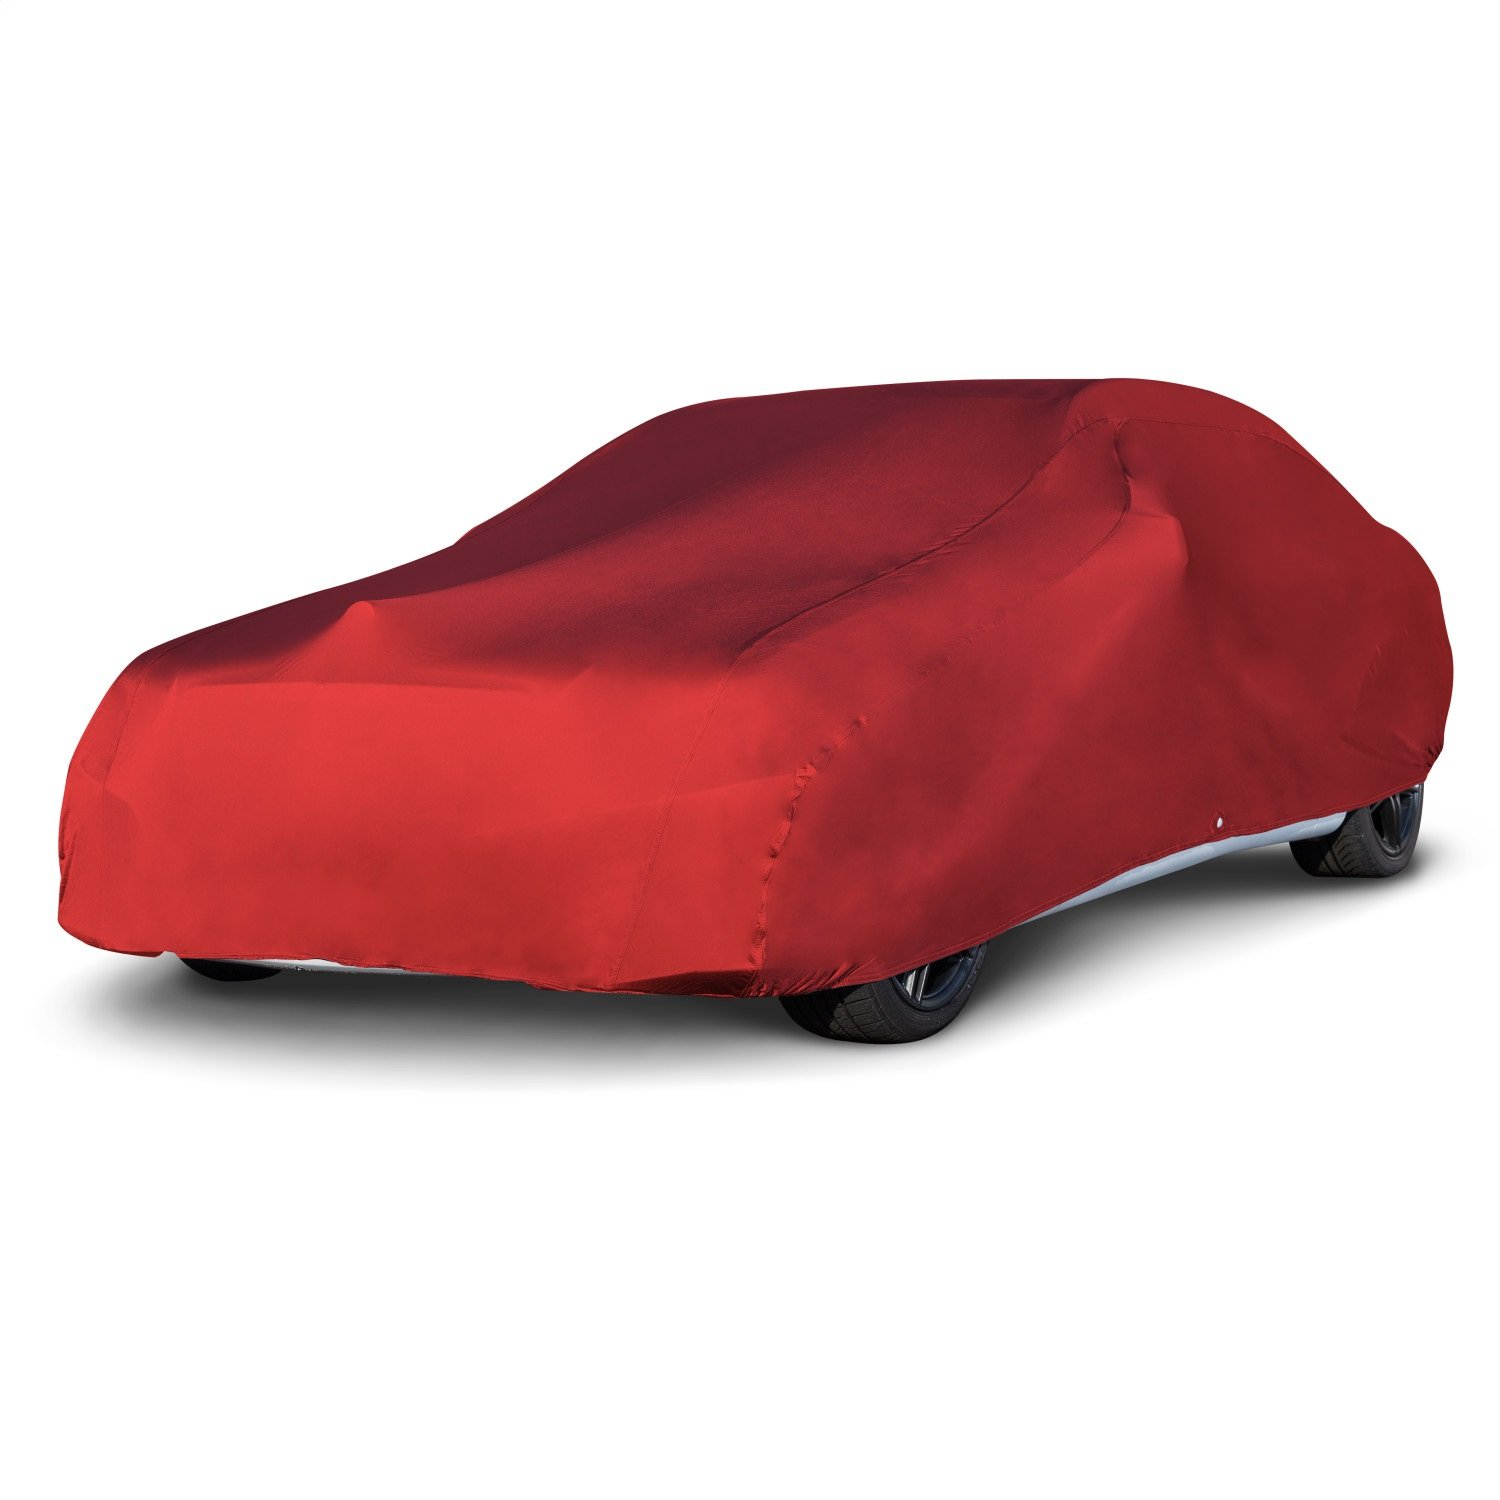 "Budge RSC-3 Red Car fits Cars up to 200"" Car Cover, Luxury Indoor Protection, Soft Inner Lining, Breathable, Dustproof"